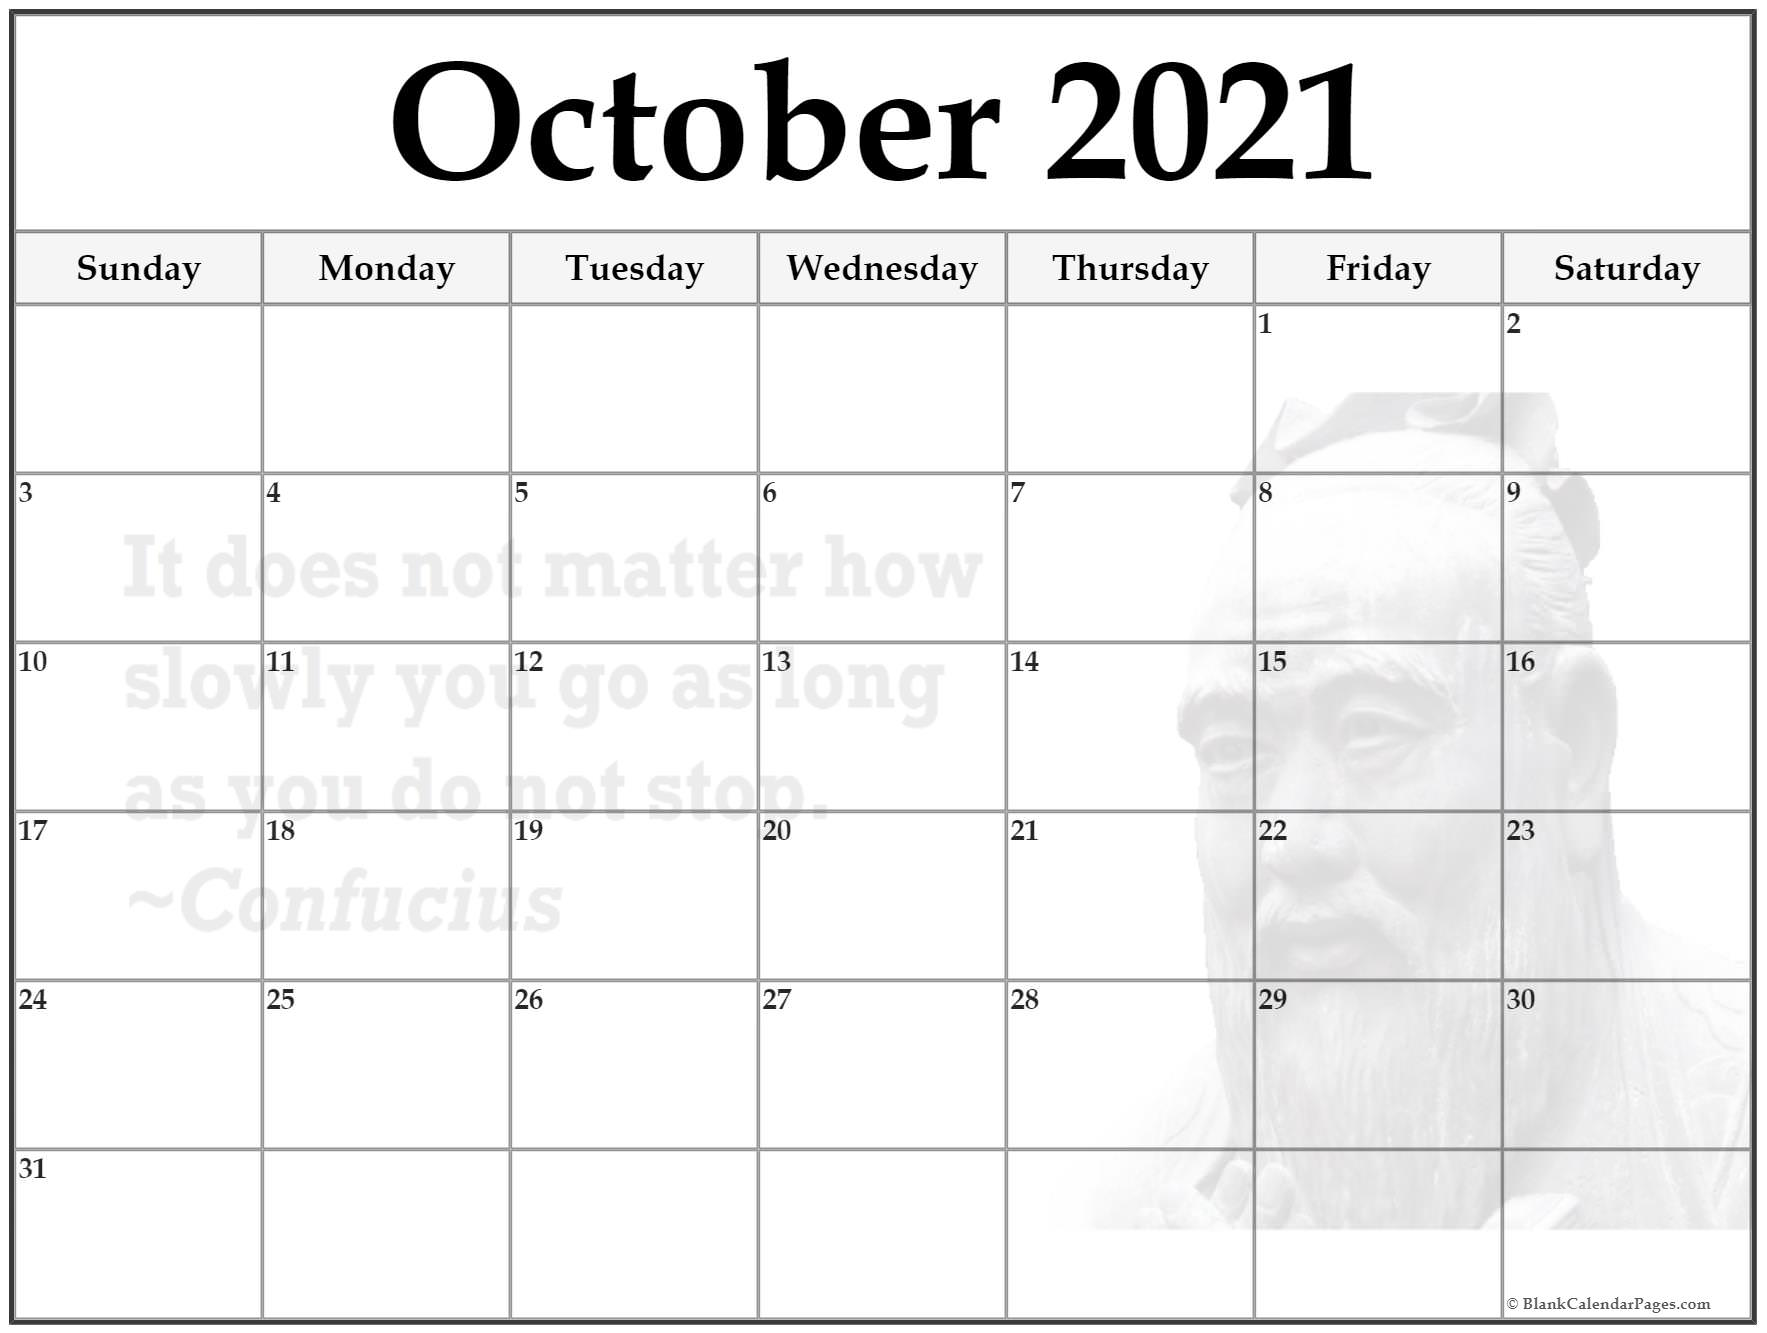 October 2020 monthly calendar template. It does not matter how slowly you go as long as you don't stop ~Confucius